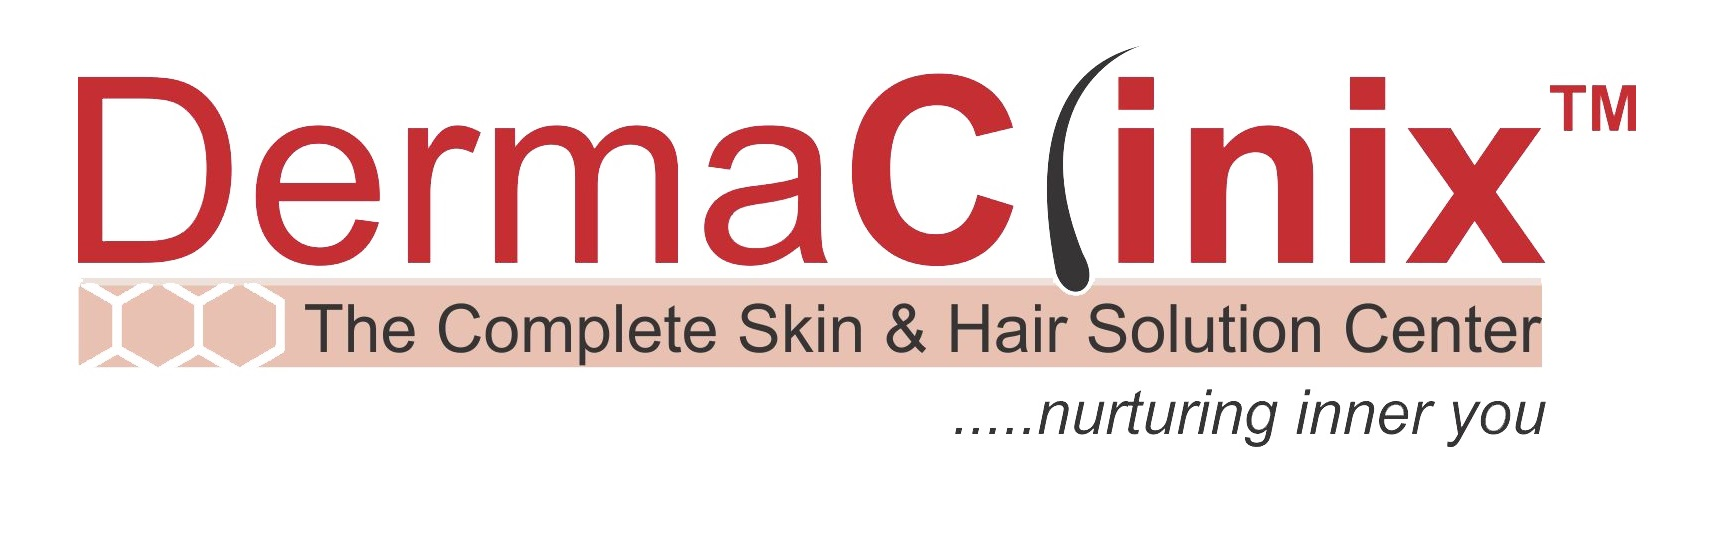 DermaClinix - The Complete Skin & Hair Solution Center